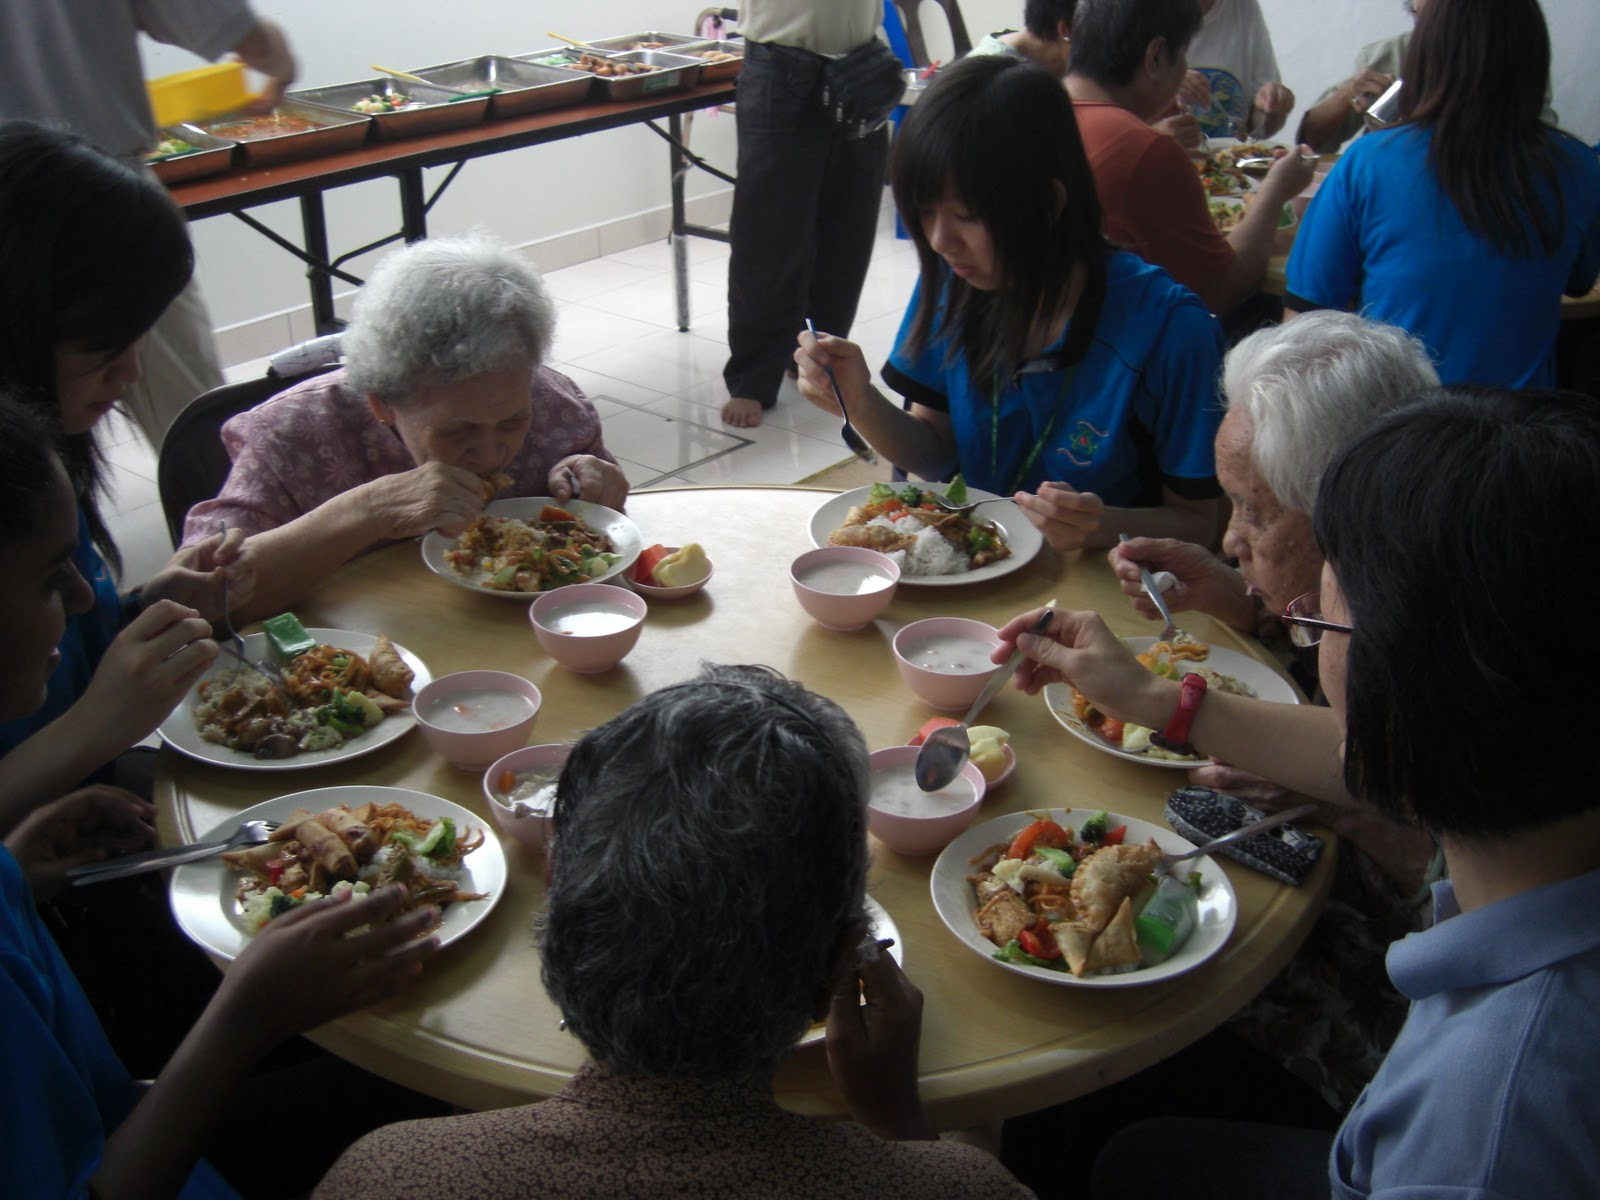 experience of visiting an old folks home A day in the life of an old people's home  although funding for more home visits has increased, the experience can be very isolating for the most sick, who are unable to do anything during the.